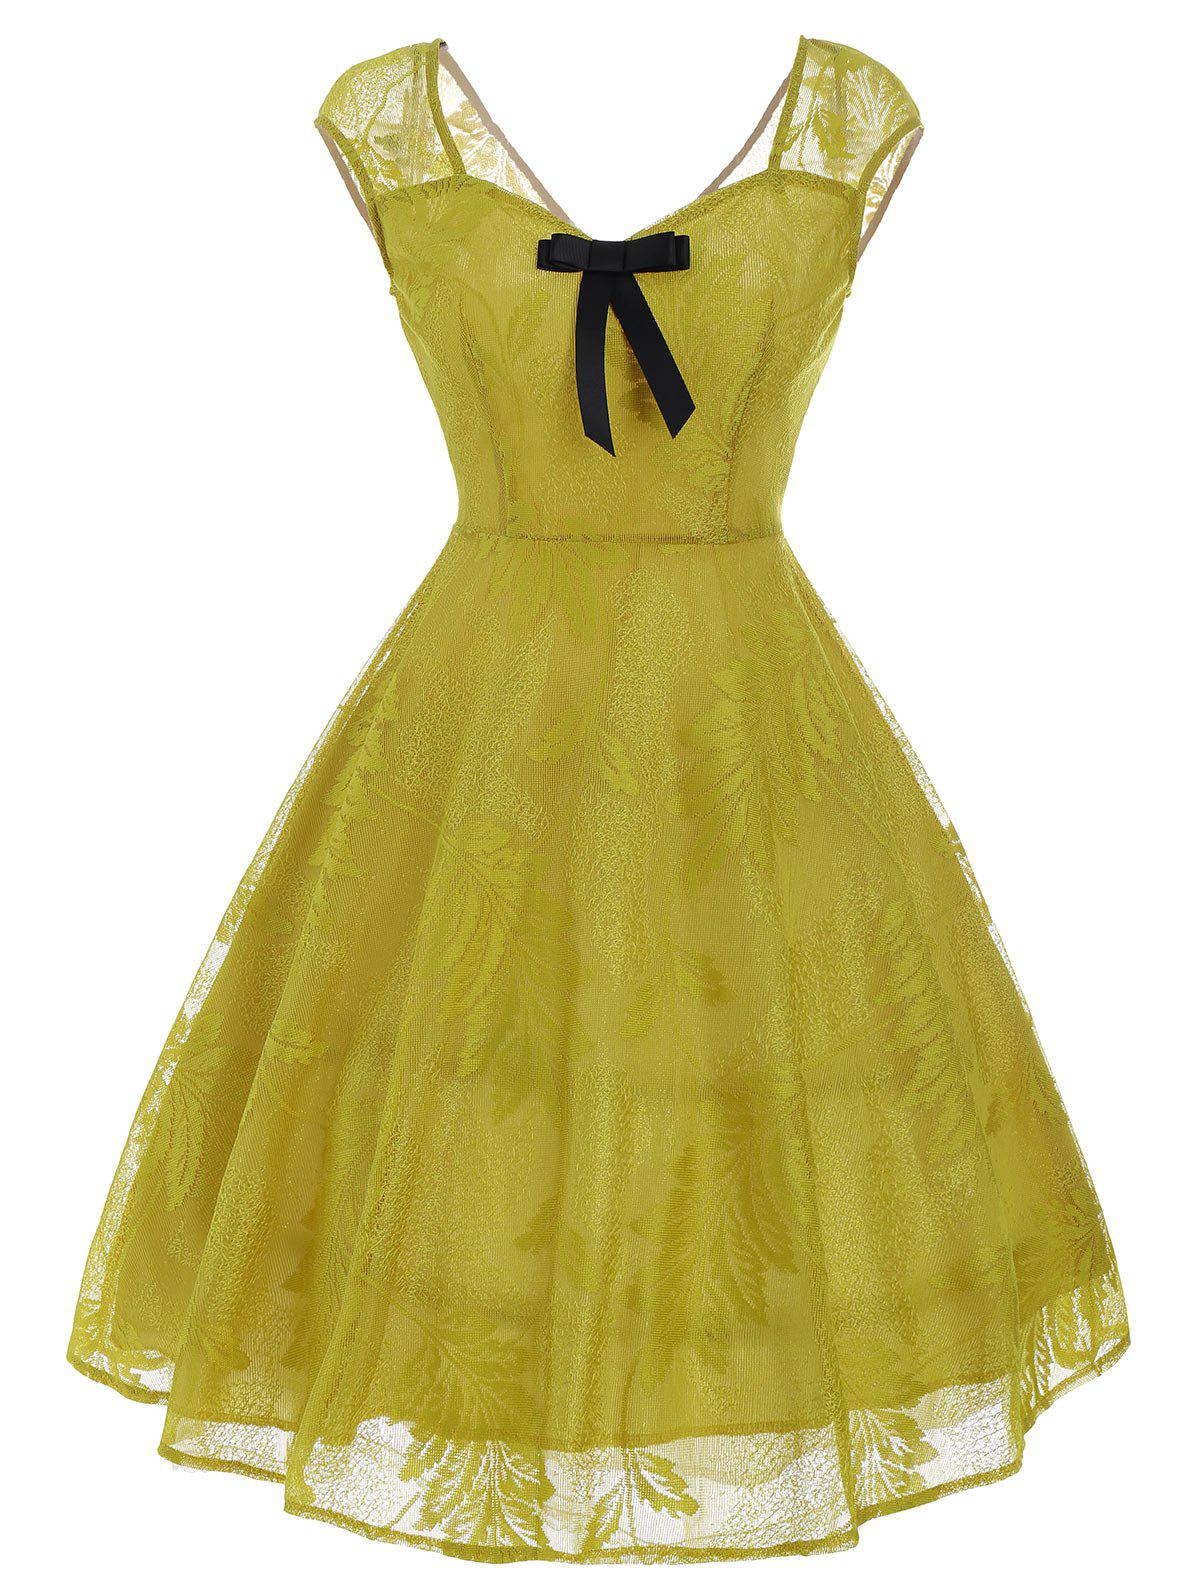 Vintage Bowknot Embellished Lace Dress, YELLOW, XL in ...